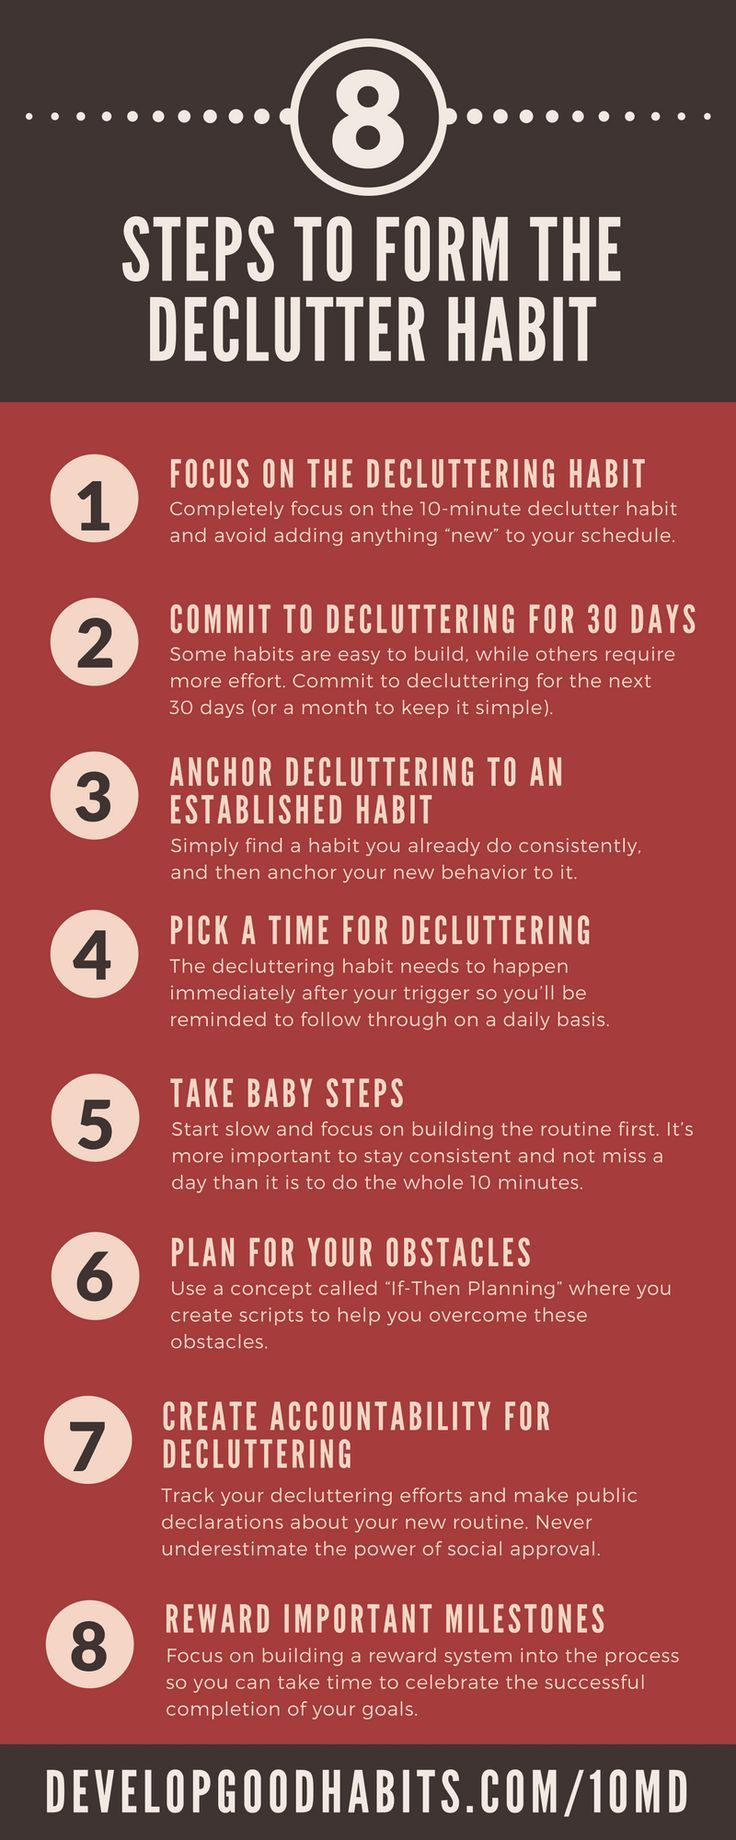 How to Form a Decluttering Habit. ------ Excerpt from 10 Minute Declutter-  Steve Scott and Barrie Davenport.